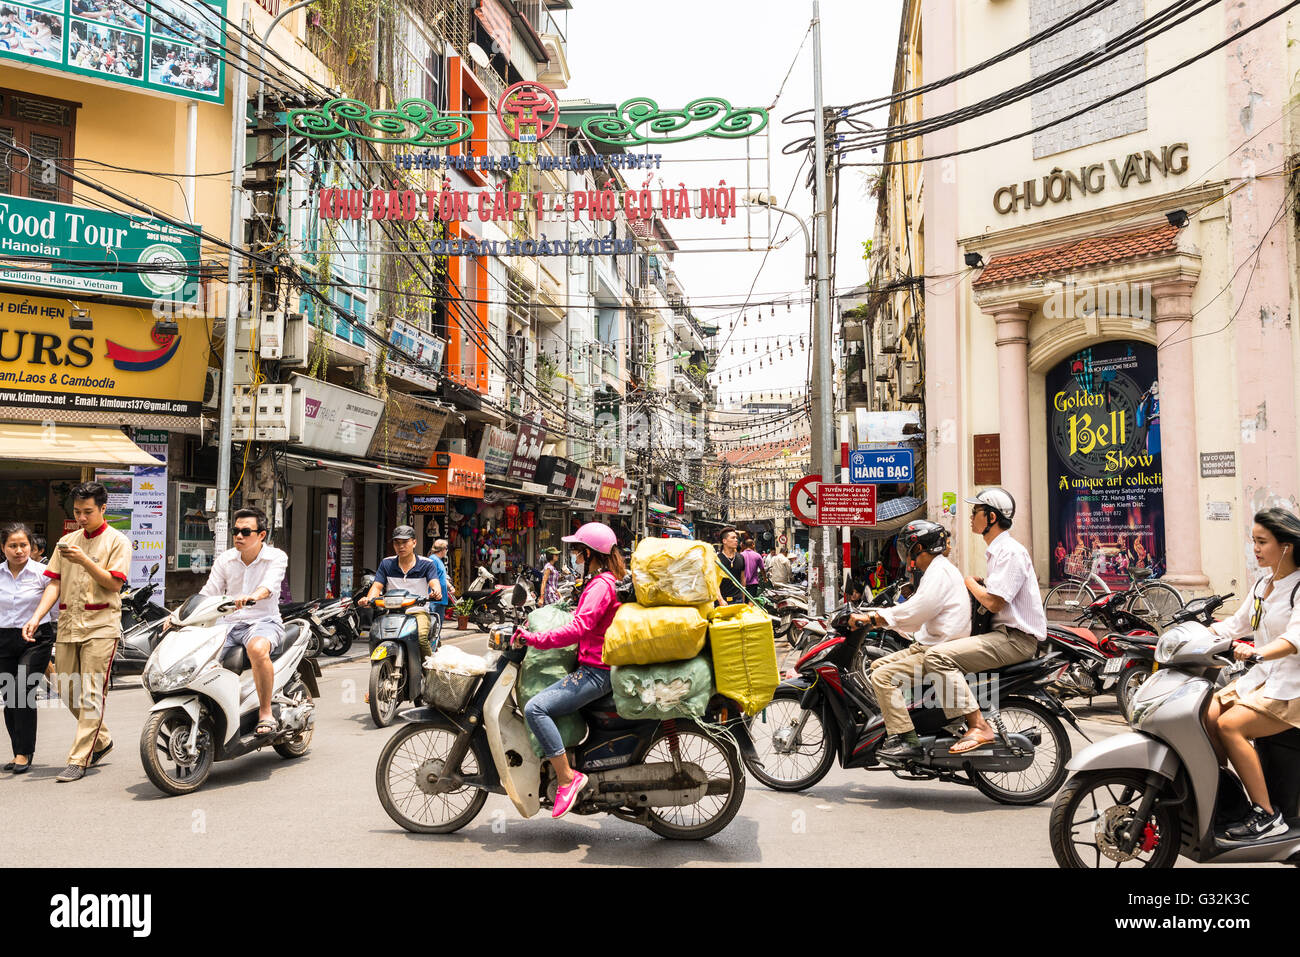 Busy motorbike traffic in the Old Quarter in Hanoi. Motorbikes have overtaken bicycles as the main form of transportation. - Stock Image